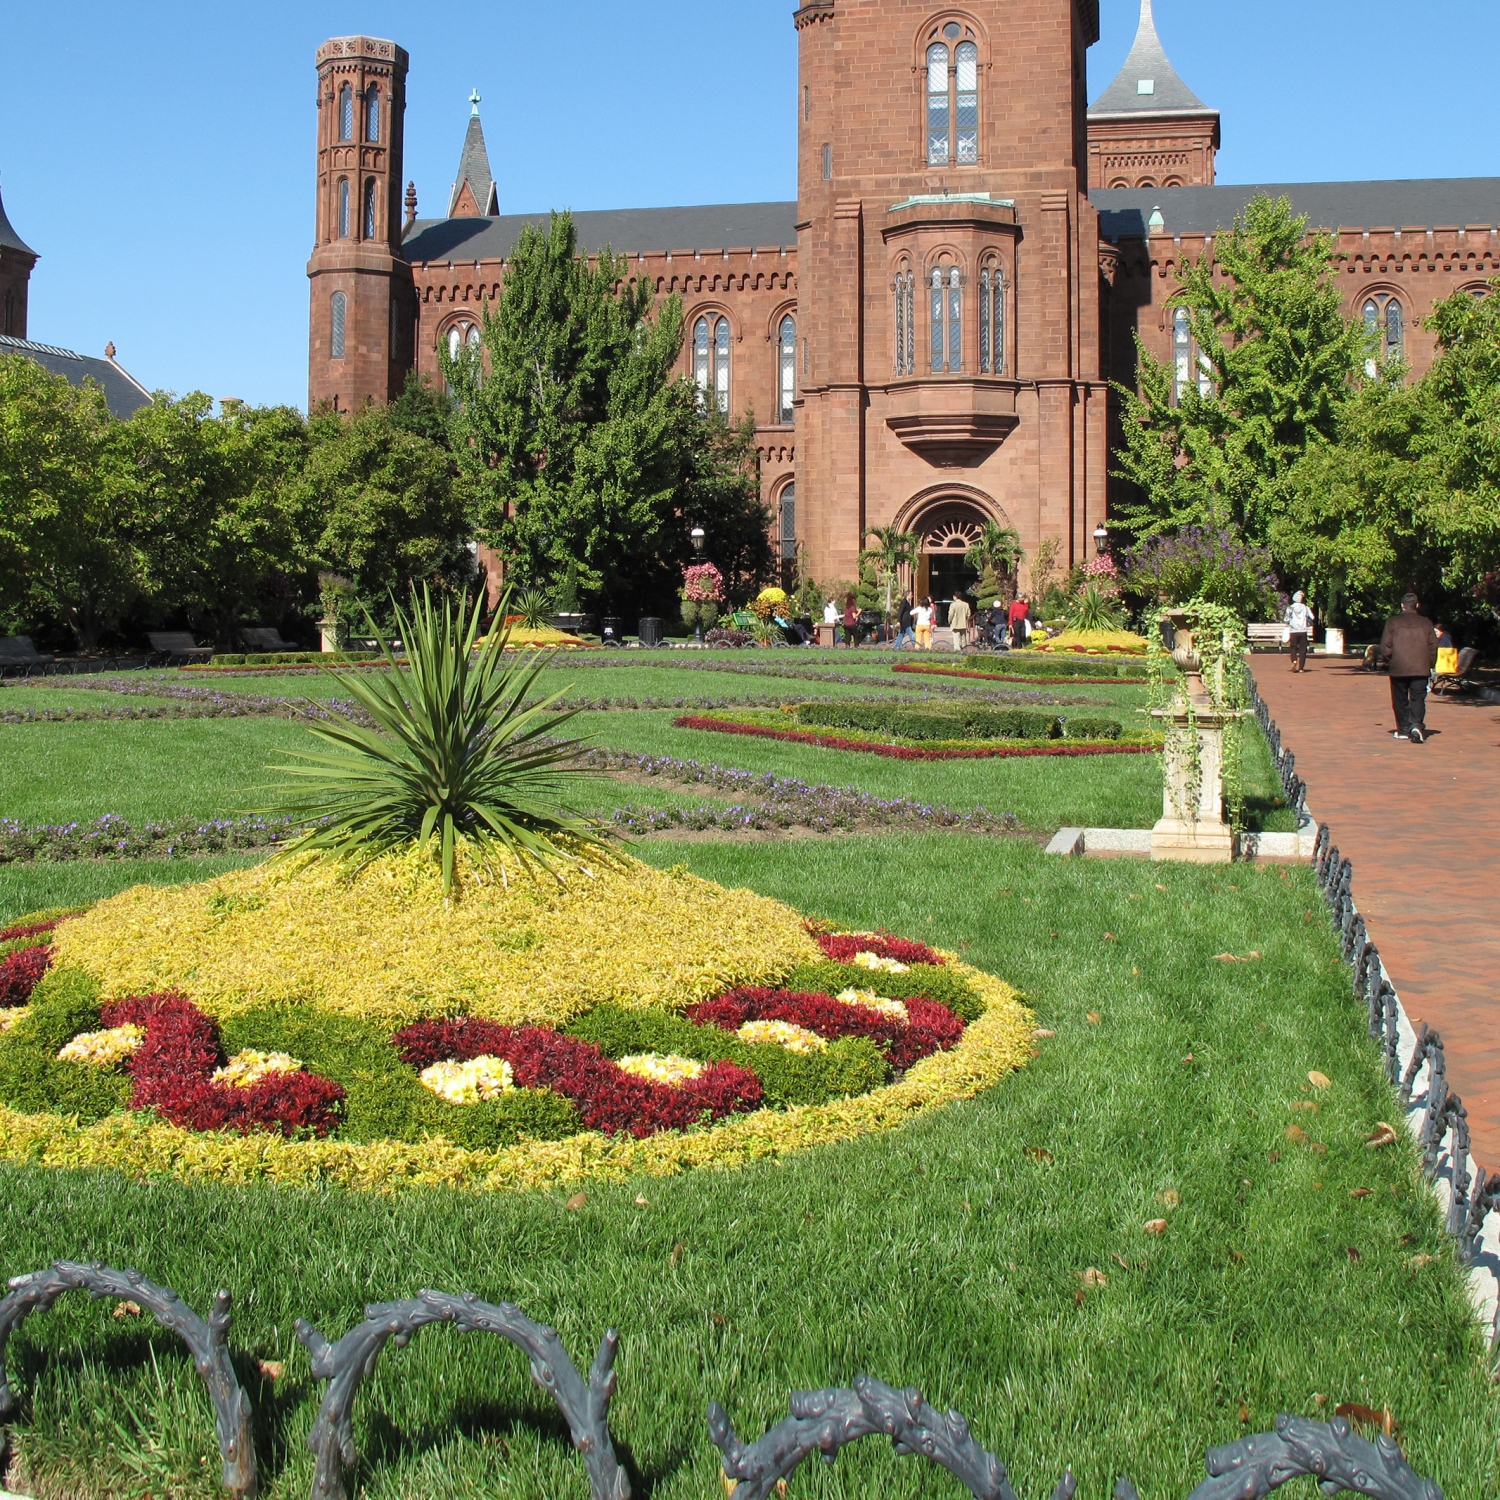 Lush green grass in front of the Smithsonian Castle